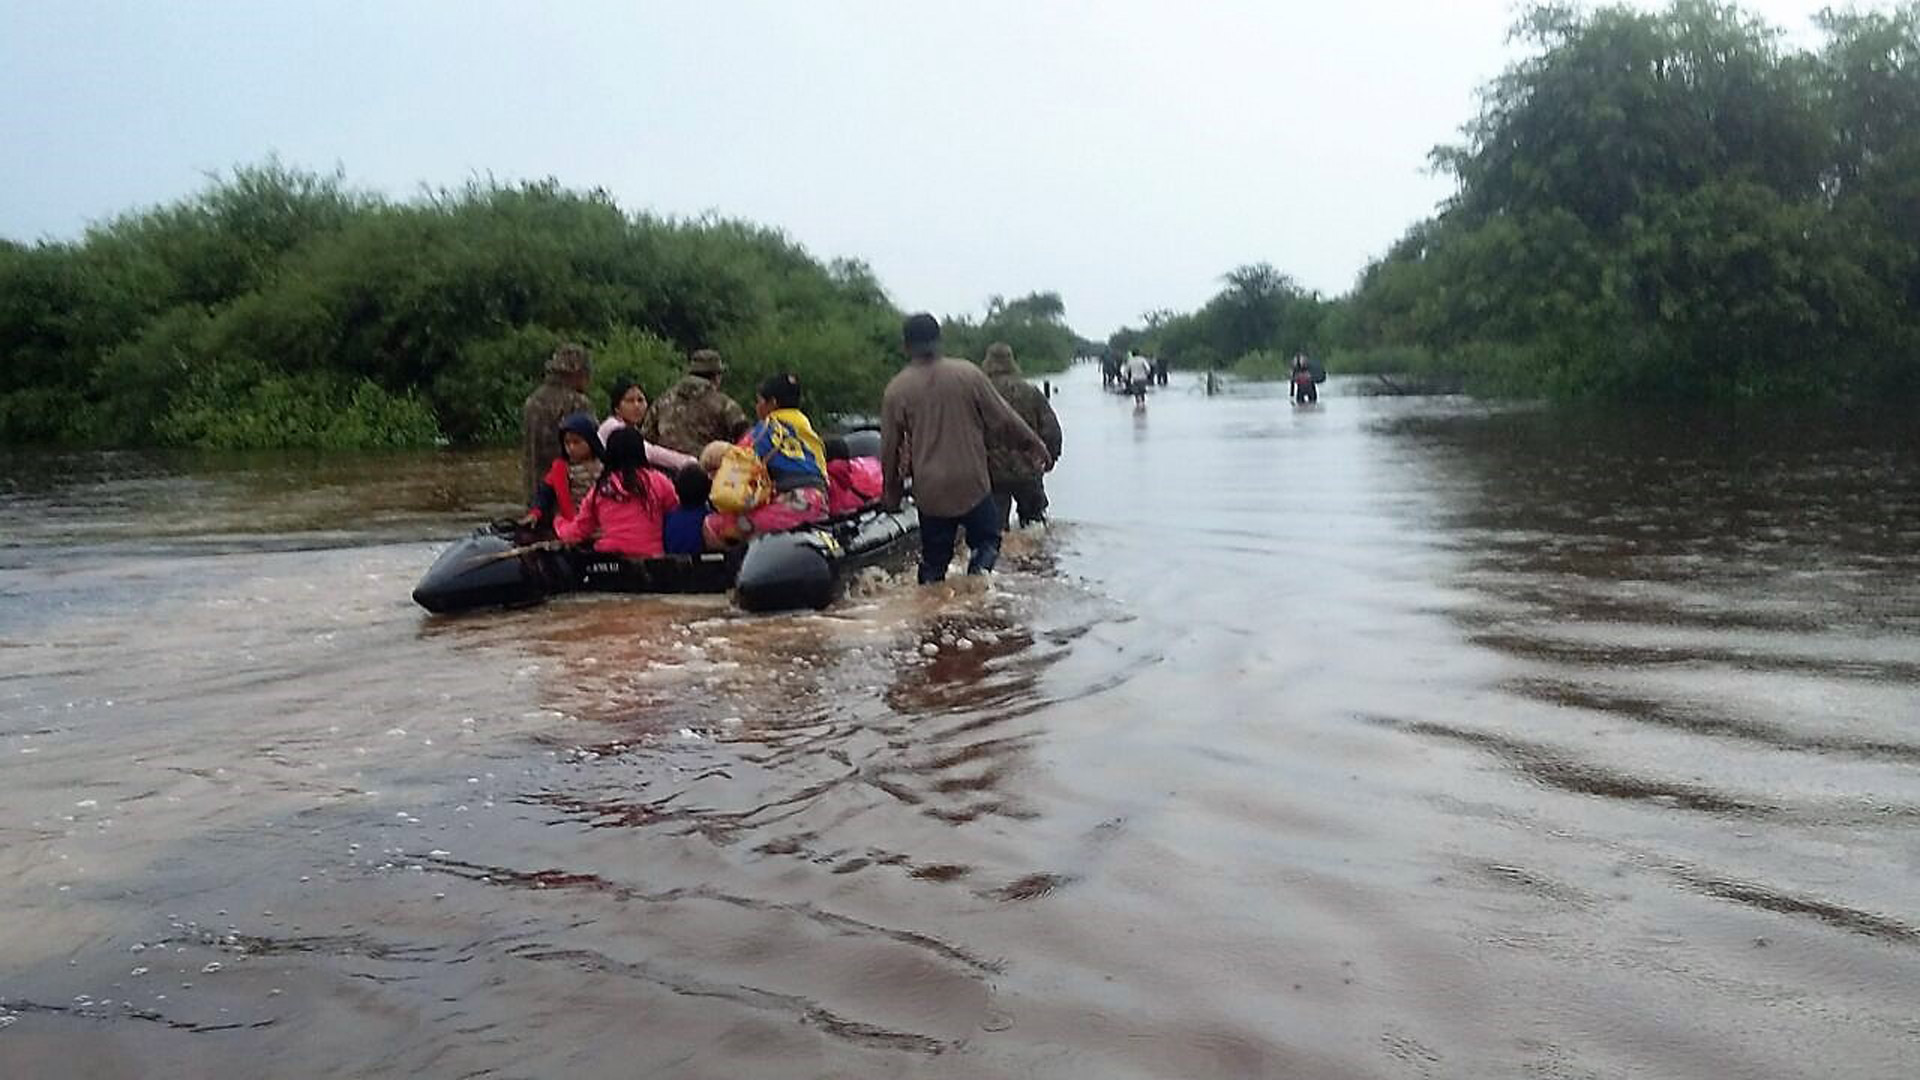 Argentine Armed Forces Aid Flood Victims